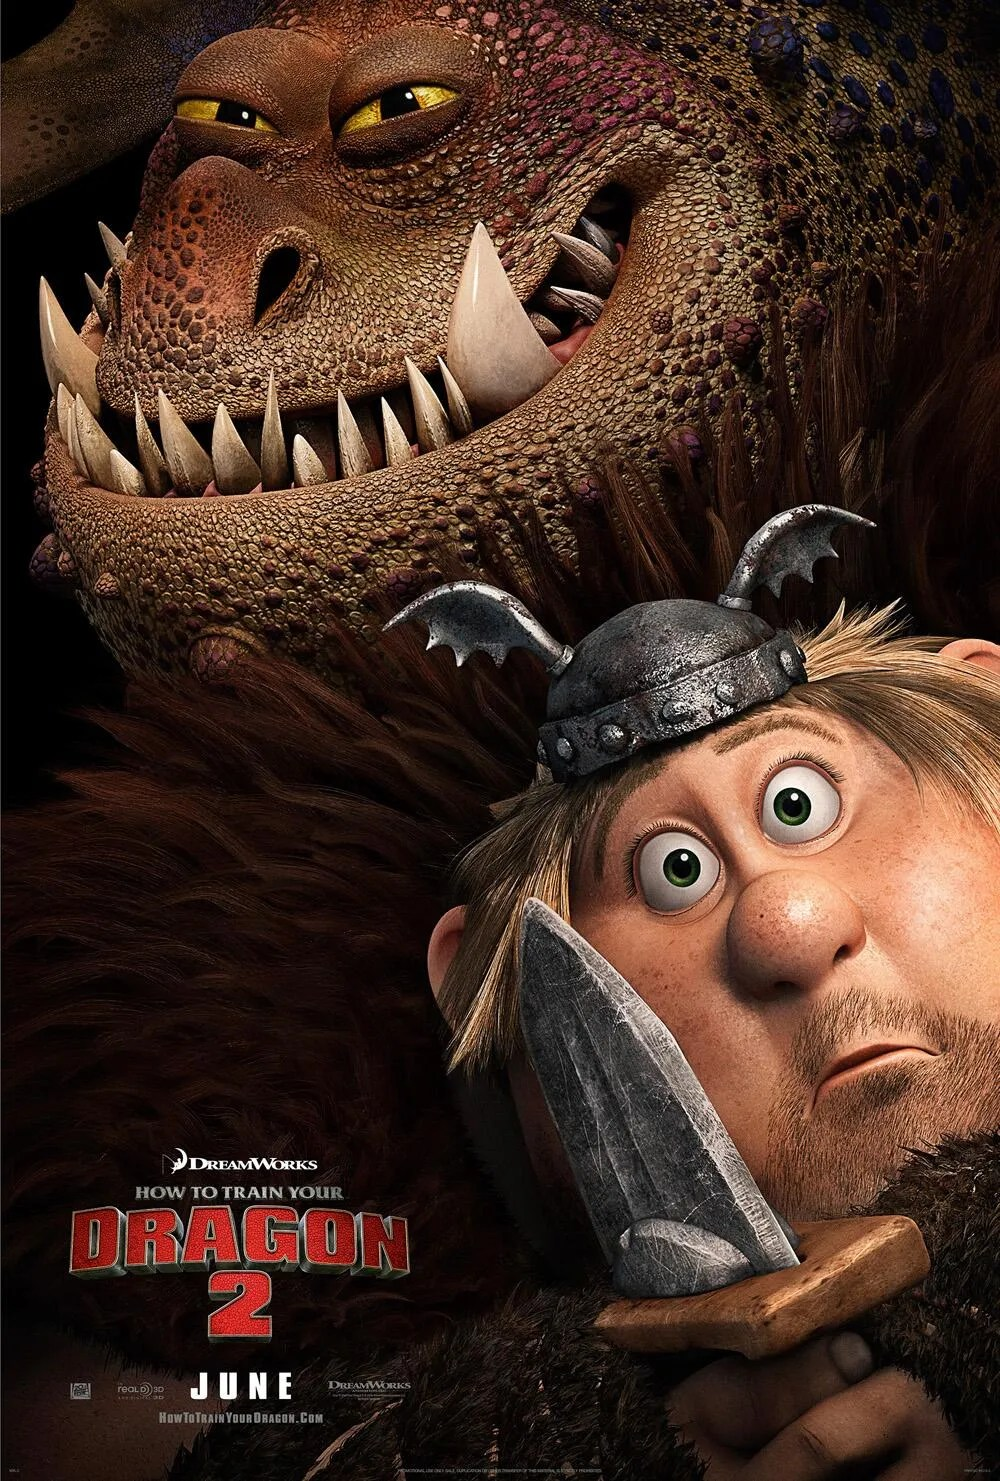 HOW TO TRAIN YOUR DRAGON 2, 300: RISE OF AN EMPIRE, BAD ...